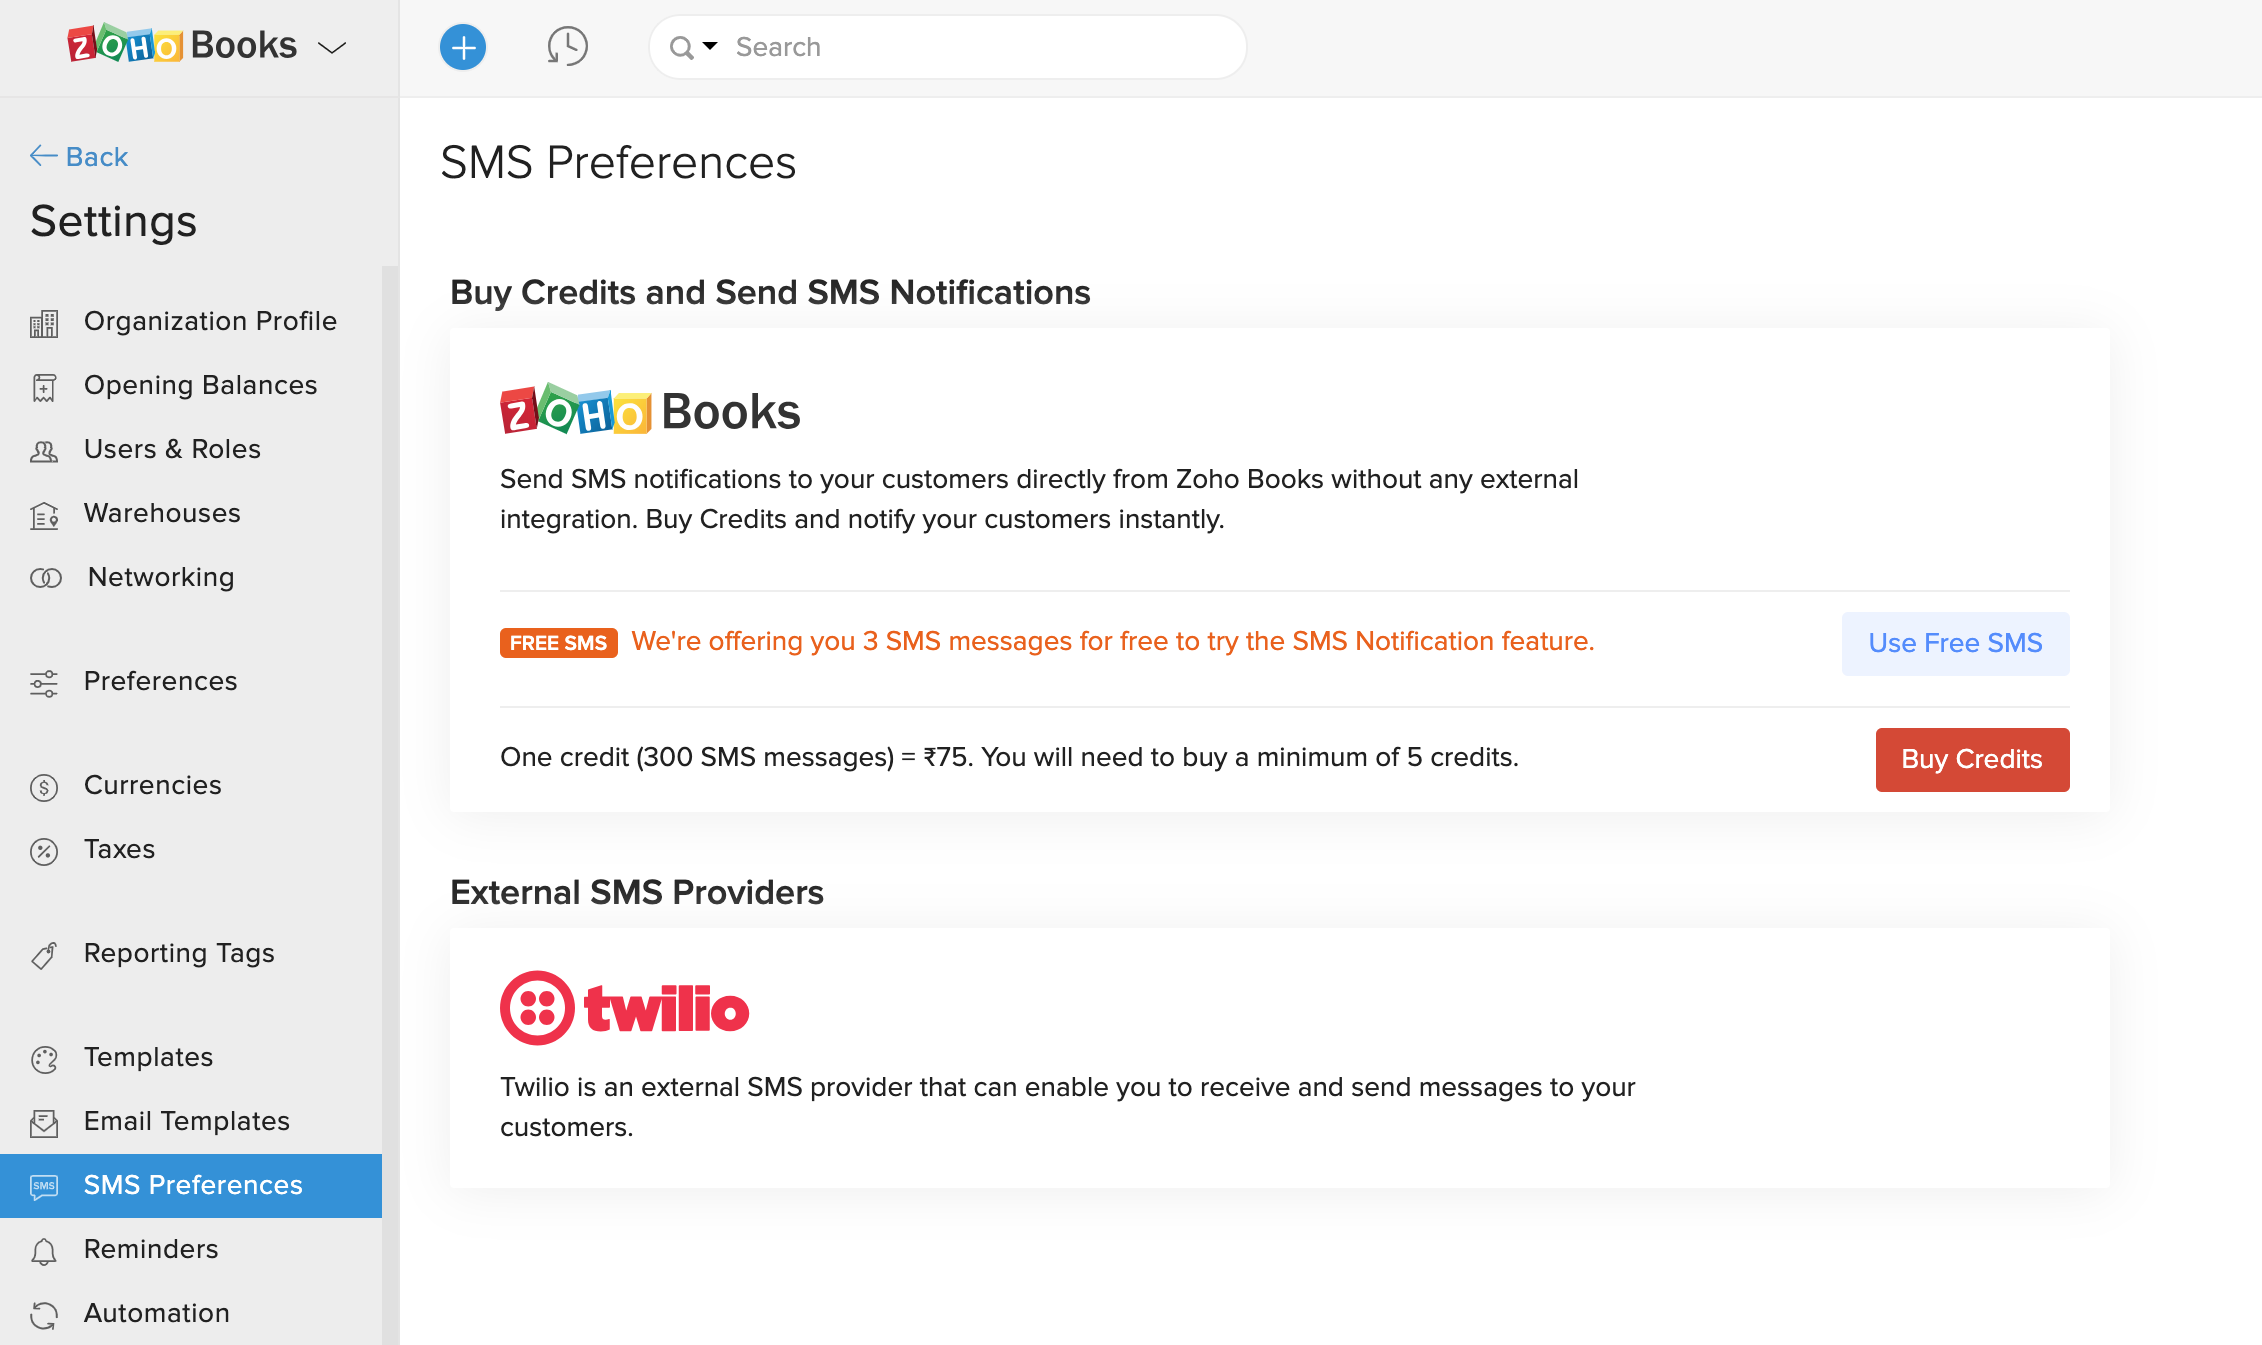 SMS Notifications | Help | Zoho Books